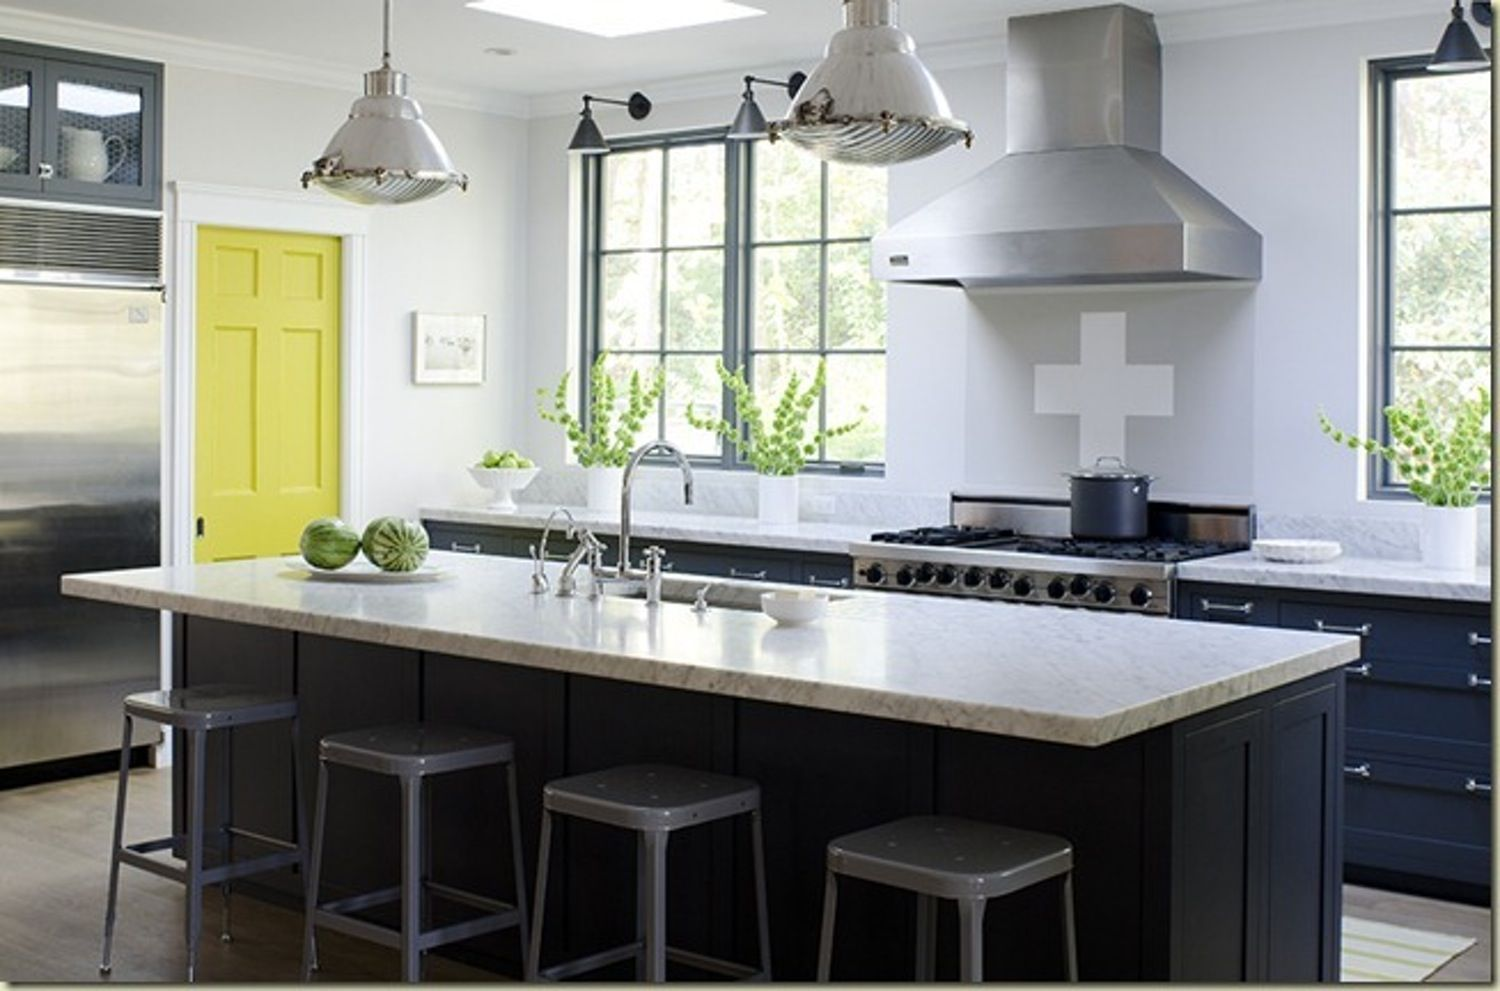 10 Kitchens Without Upper Cabinets   Kitchens without ...